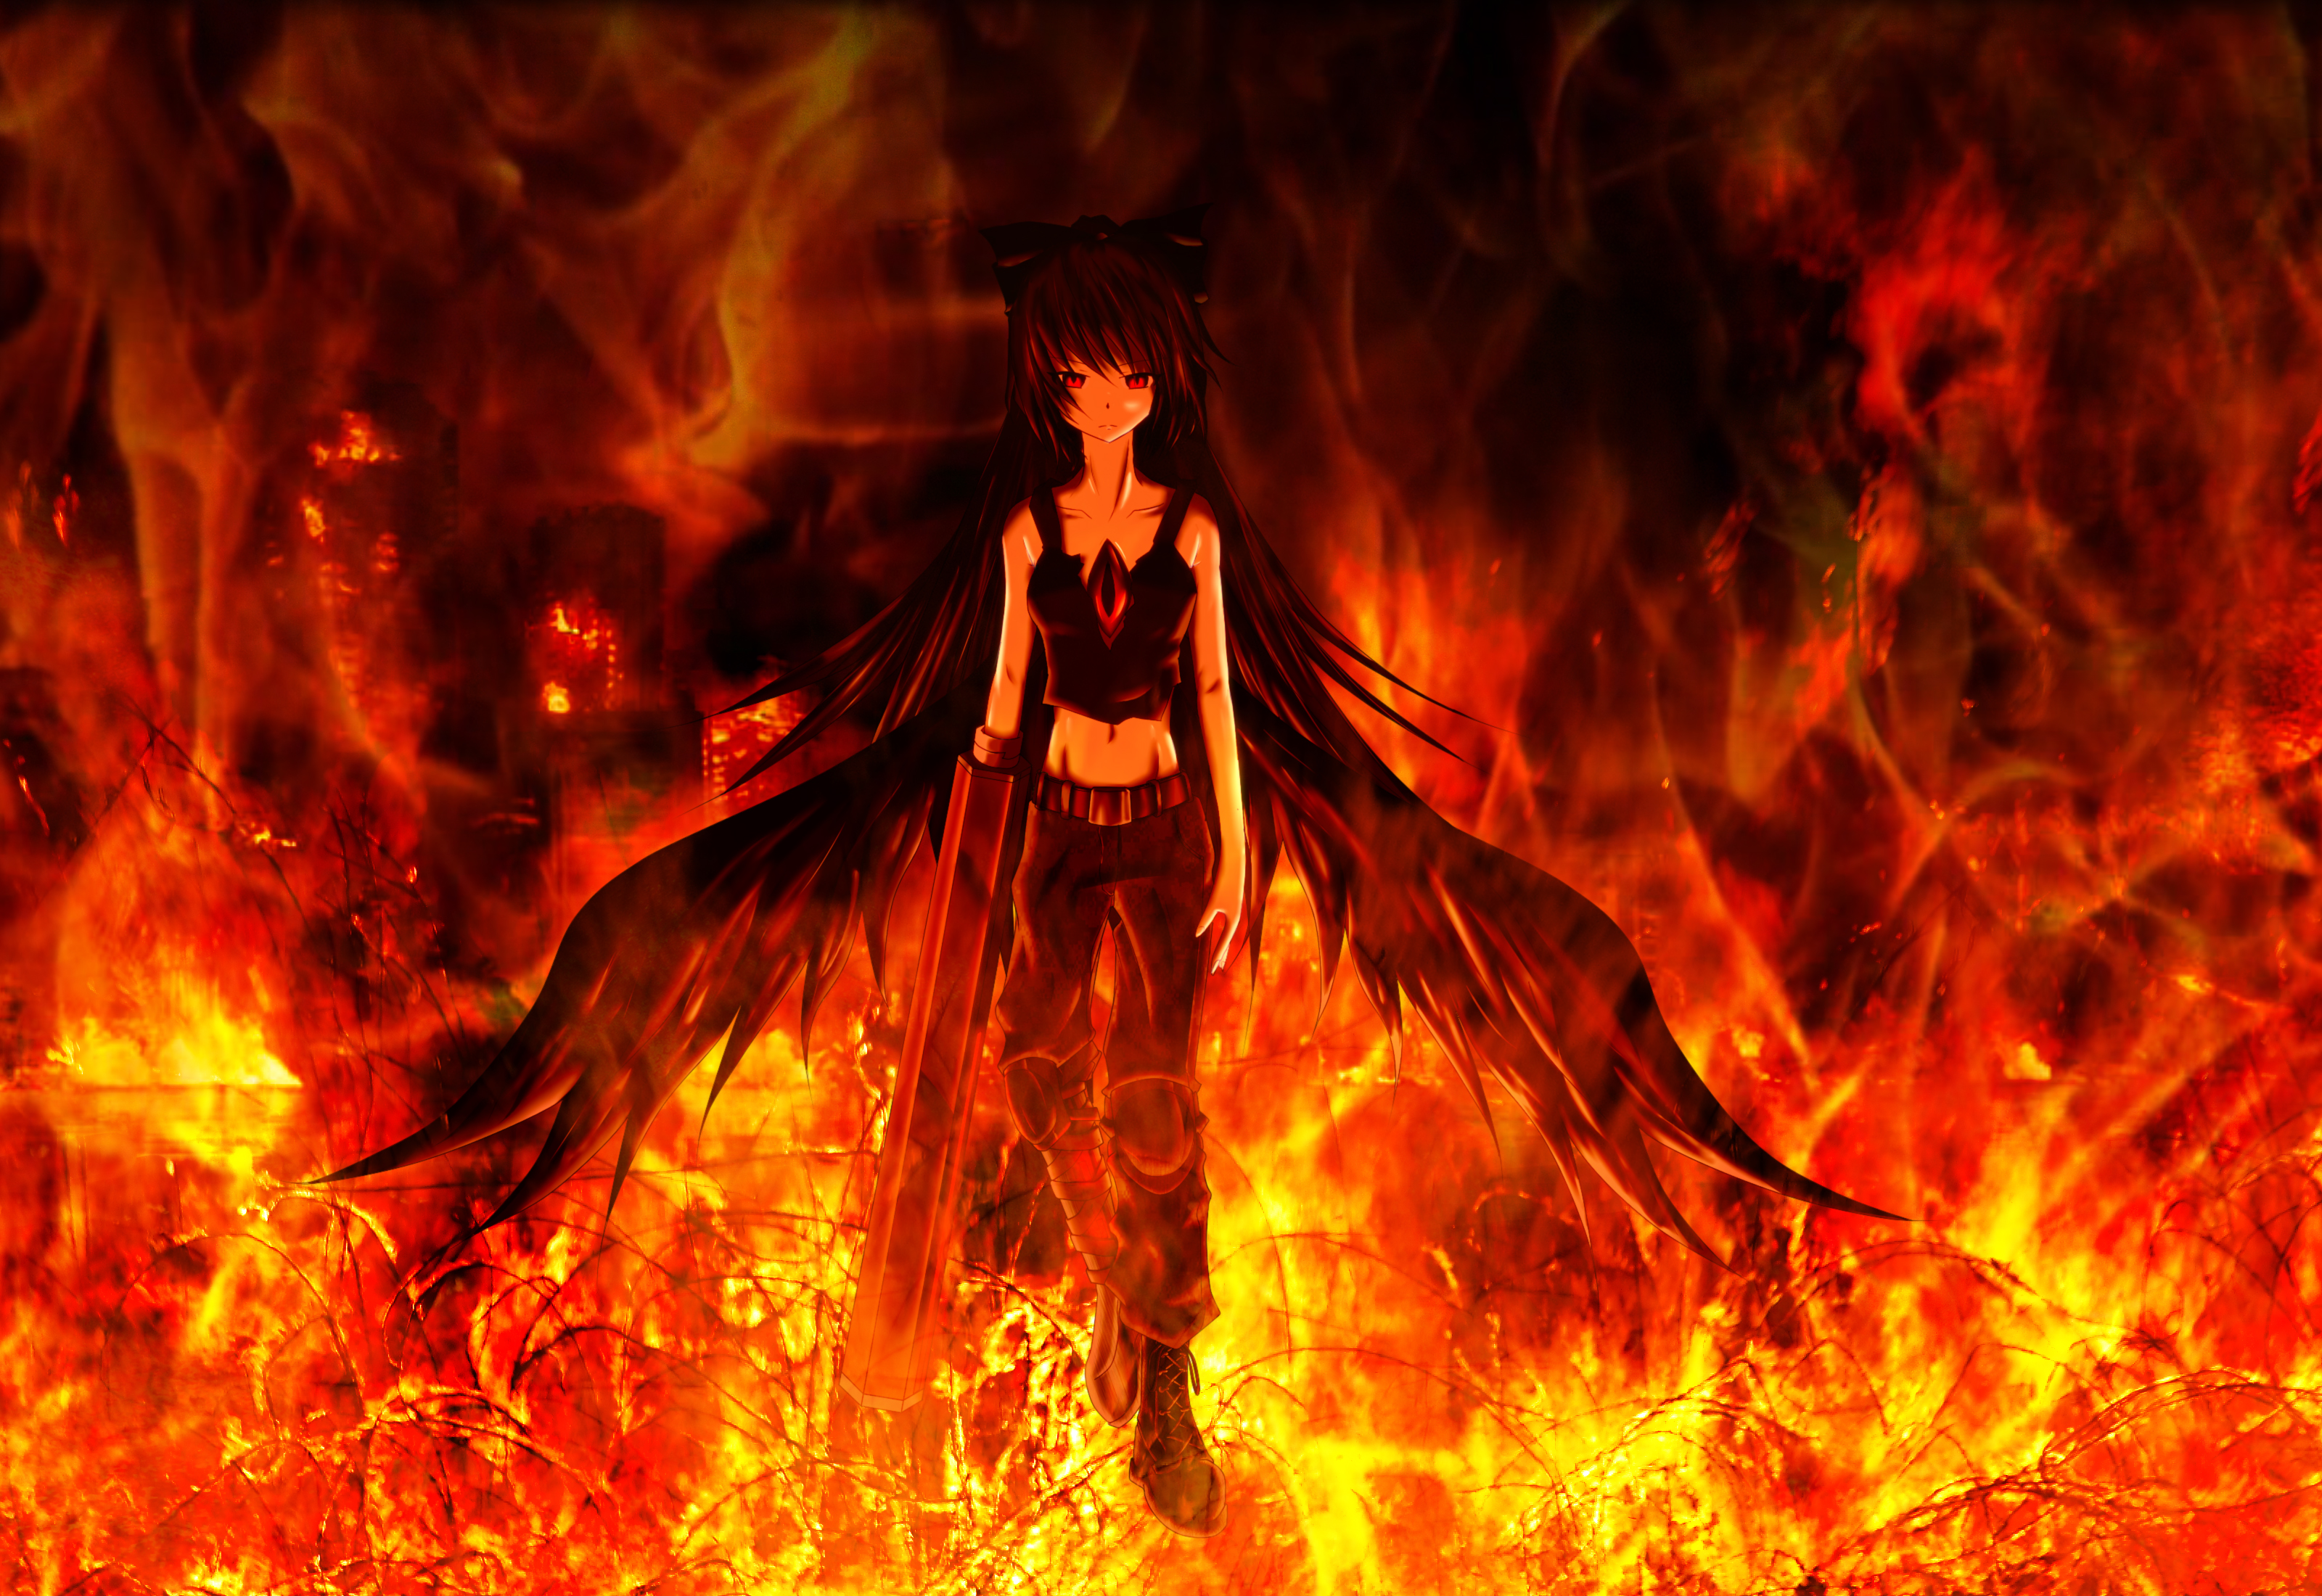 Born Of Fire Fantasy images